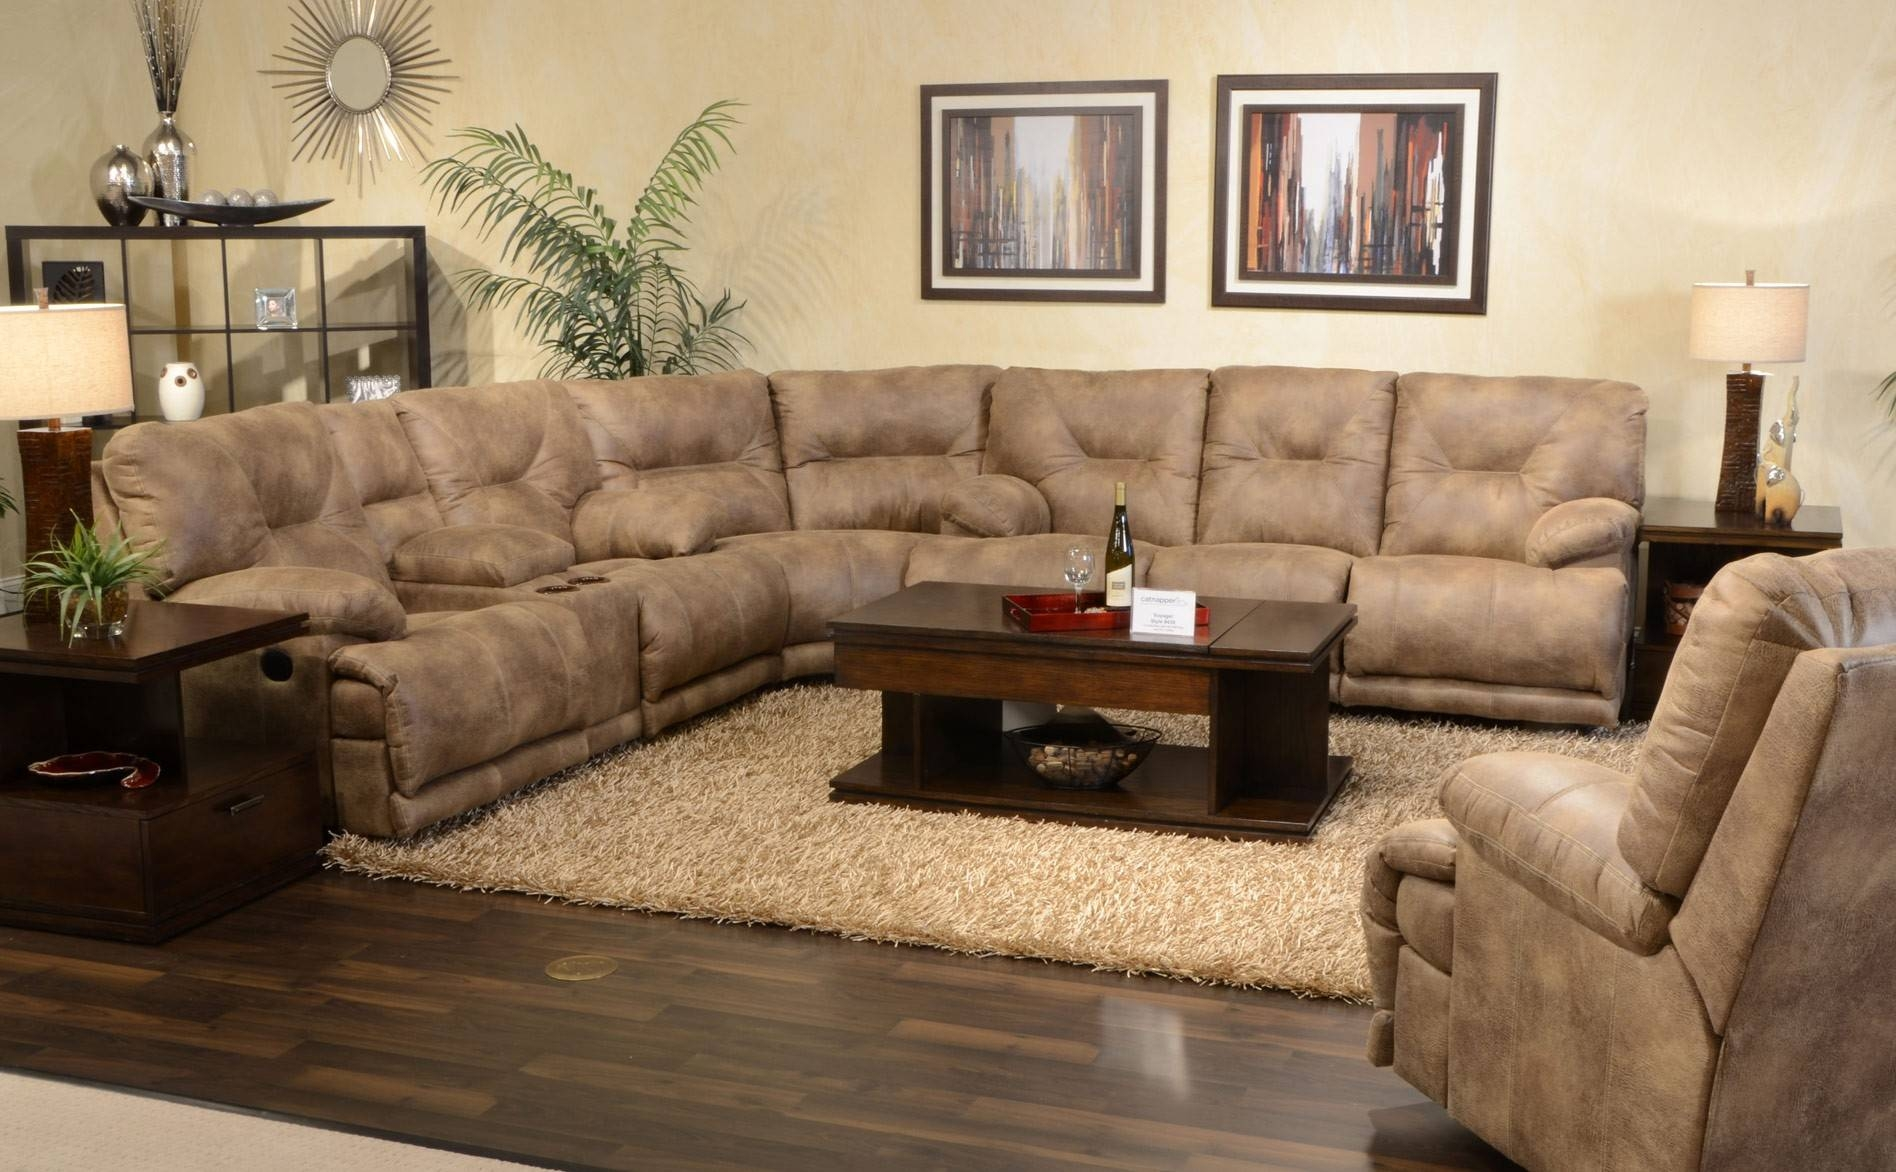 Fancy Slipcovers For Sectional Sofas With Recliners 76 For Your Intended For Seagrass Sectional Sofas (View 2 of 15)